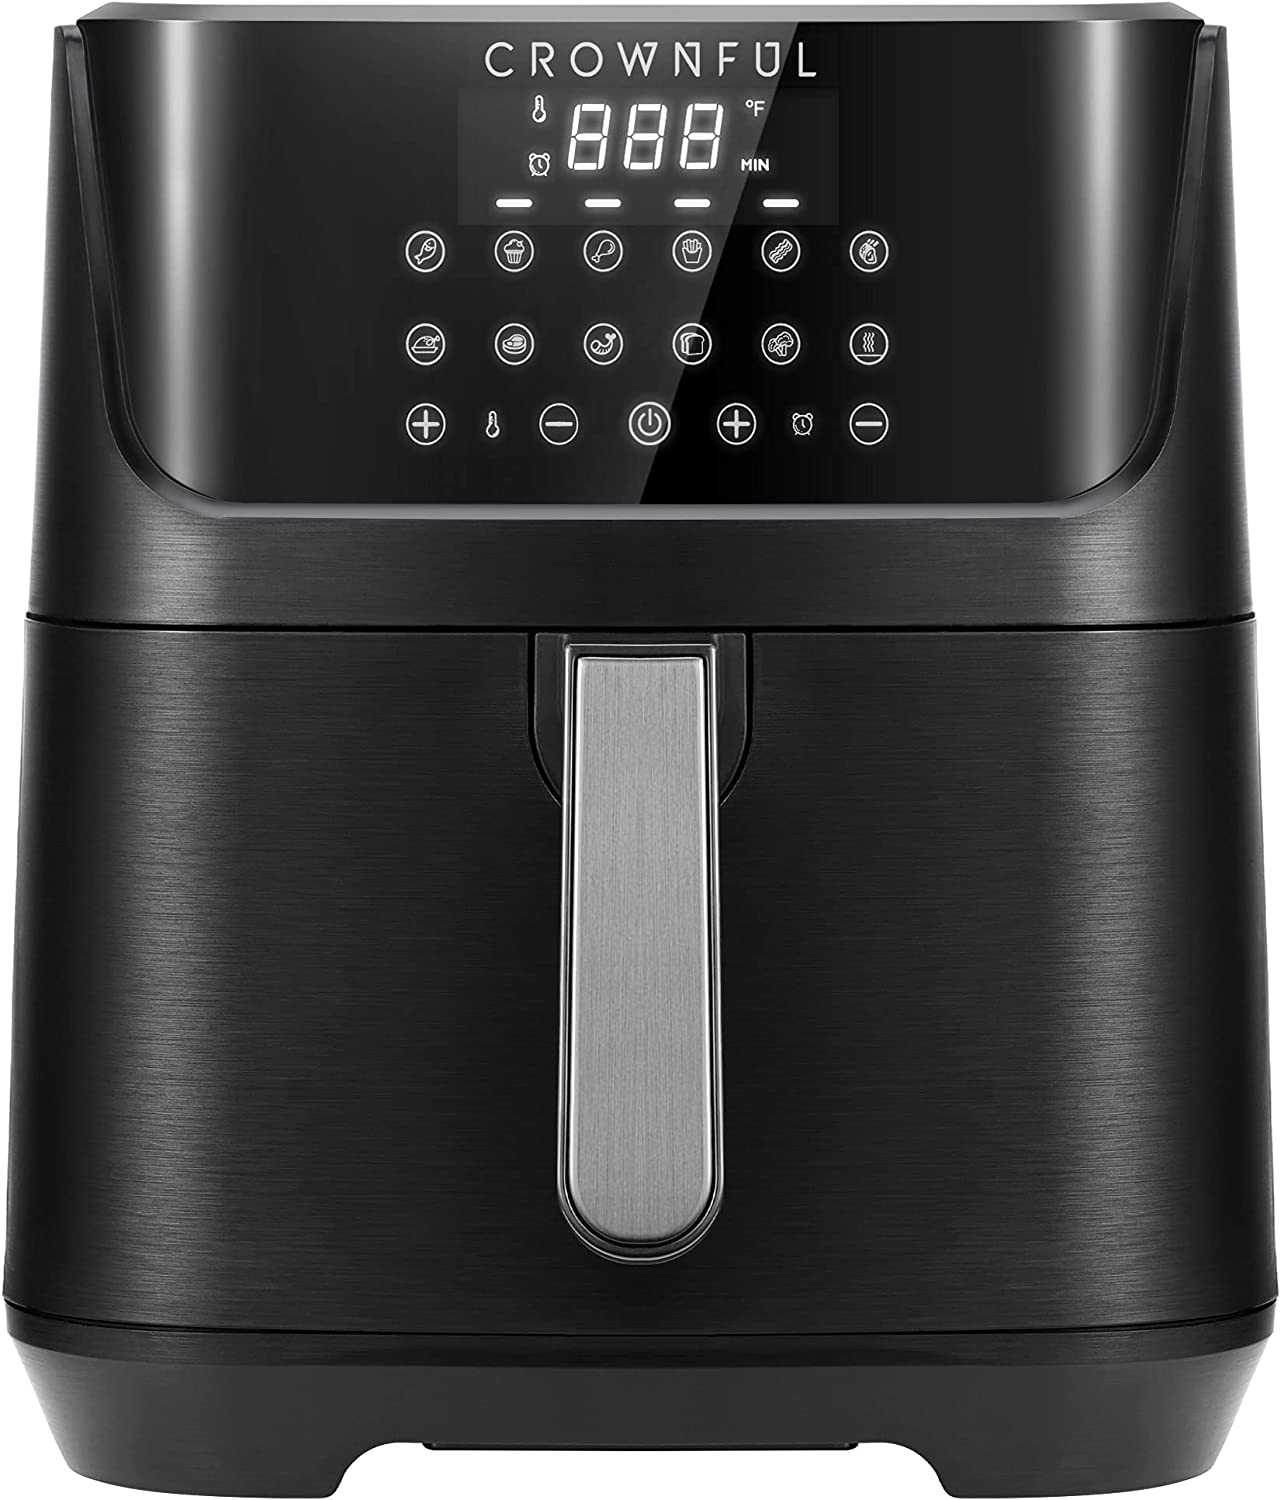 Crownful 7 Quart Air Fryer, Oilless Electric Cooker with 12 Cooking Functions, LCD Digital Touch Screen with Precise Temperature Control, Nonstick Basket, 1700W, UL Listed-Black